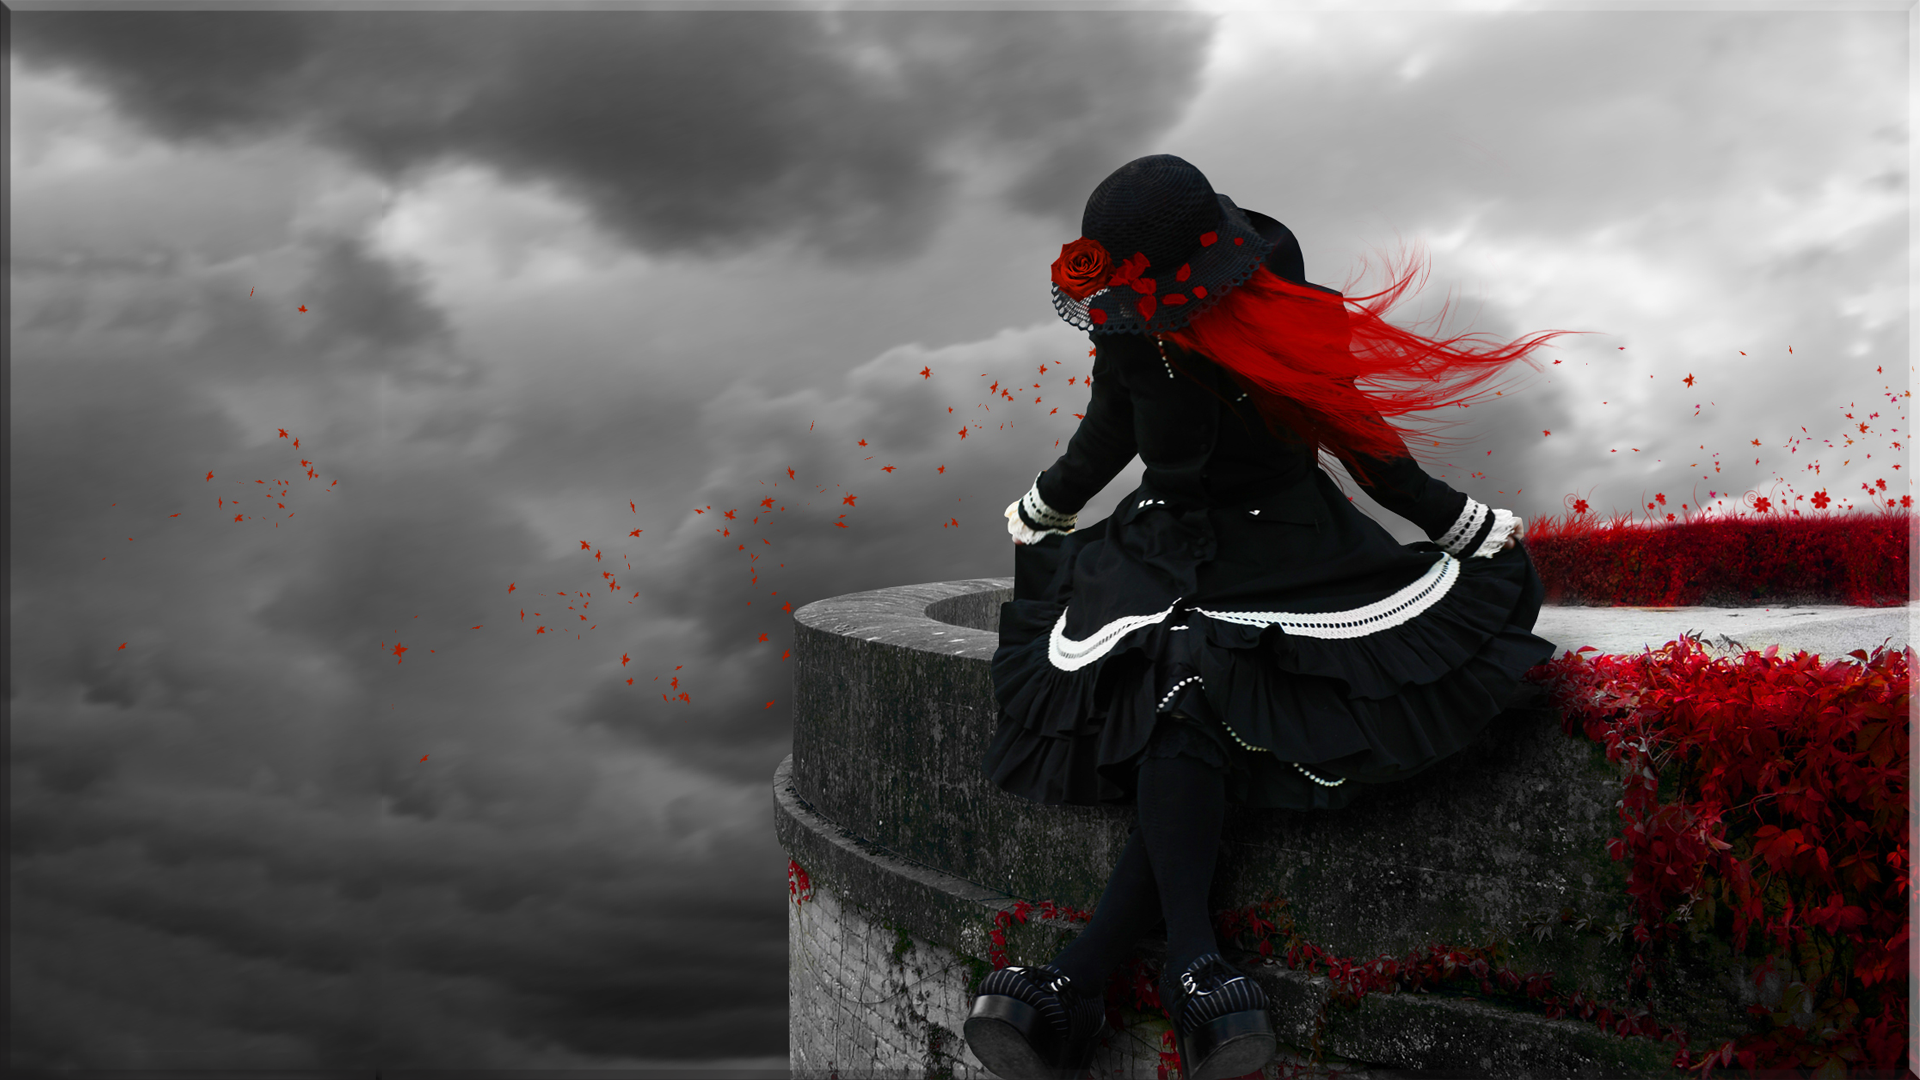 Gothic Wallpapers Best Wallpapers 1920x1080